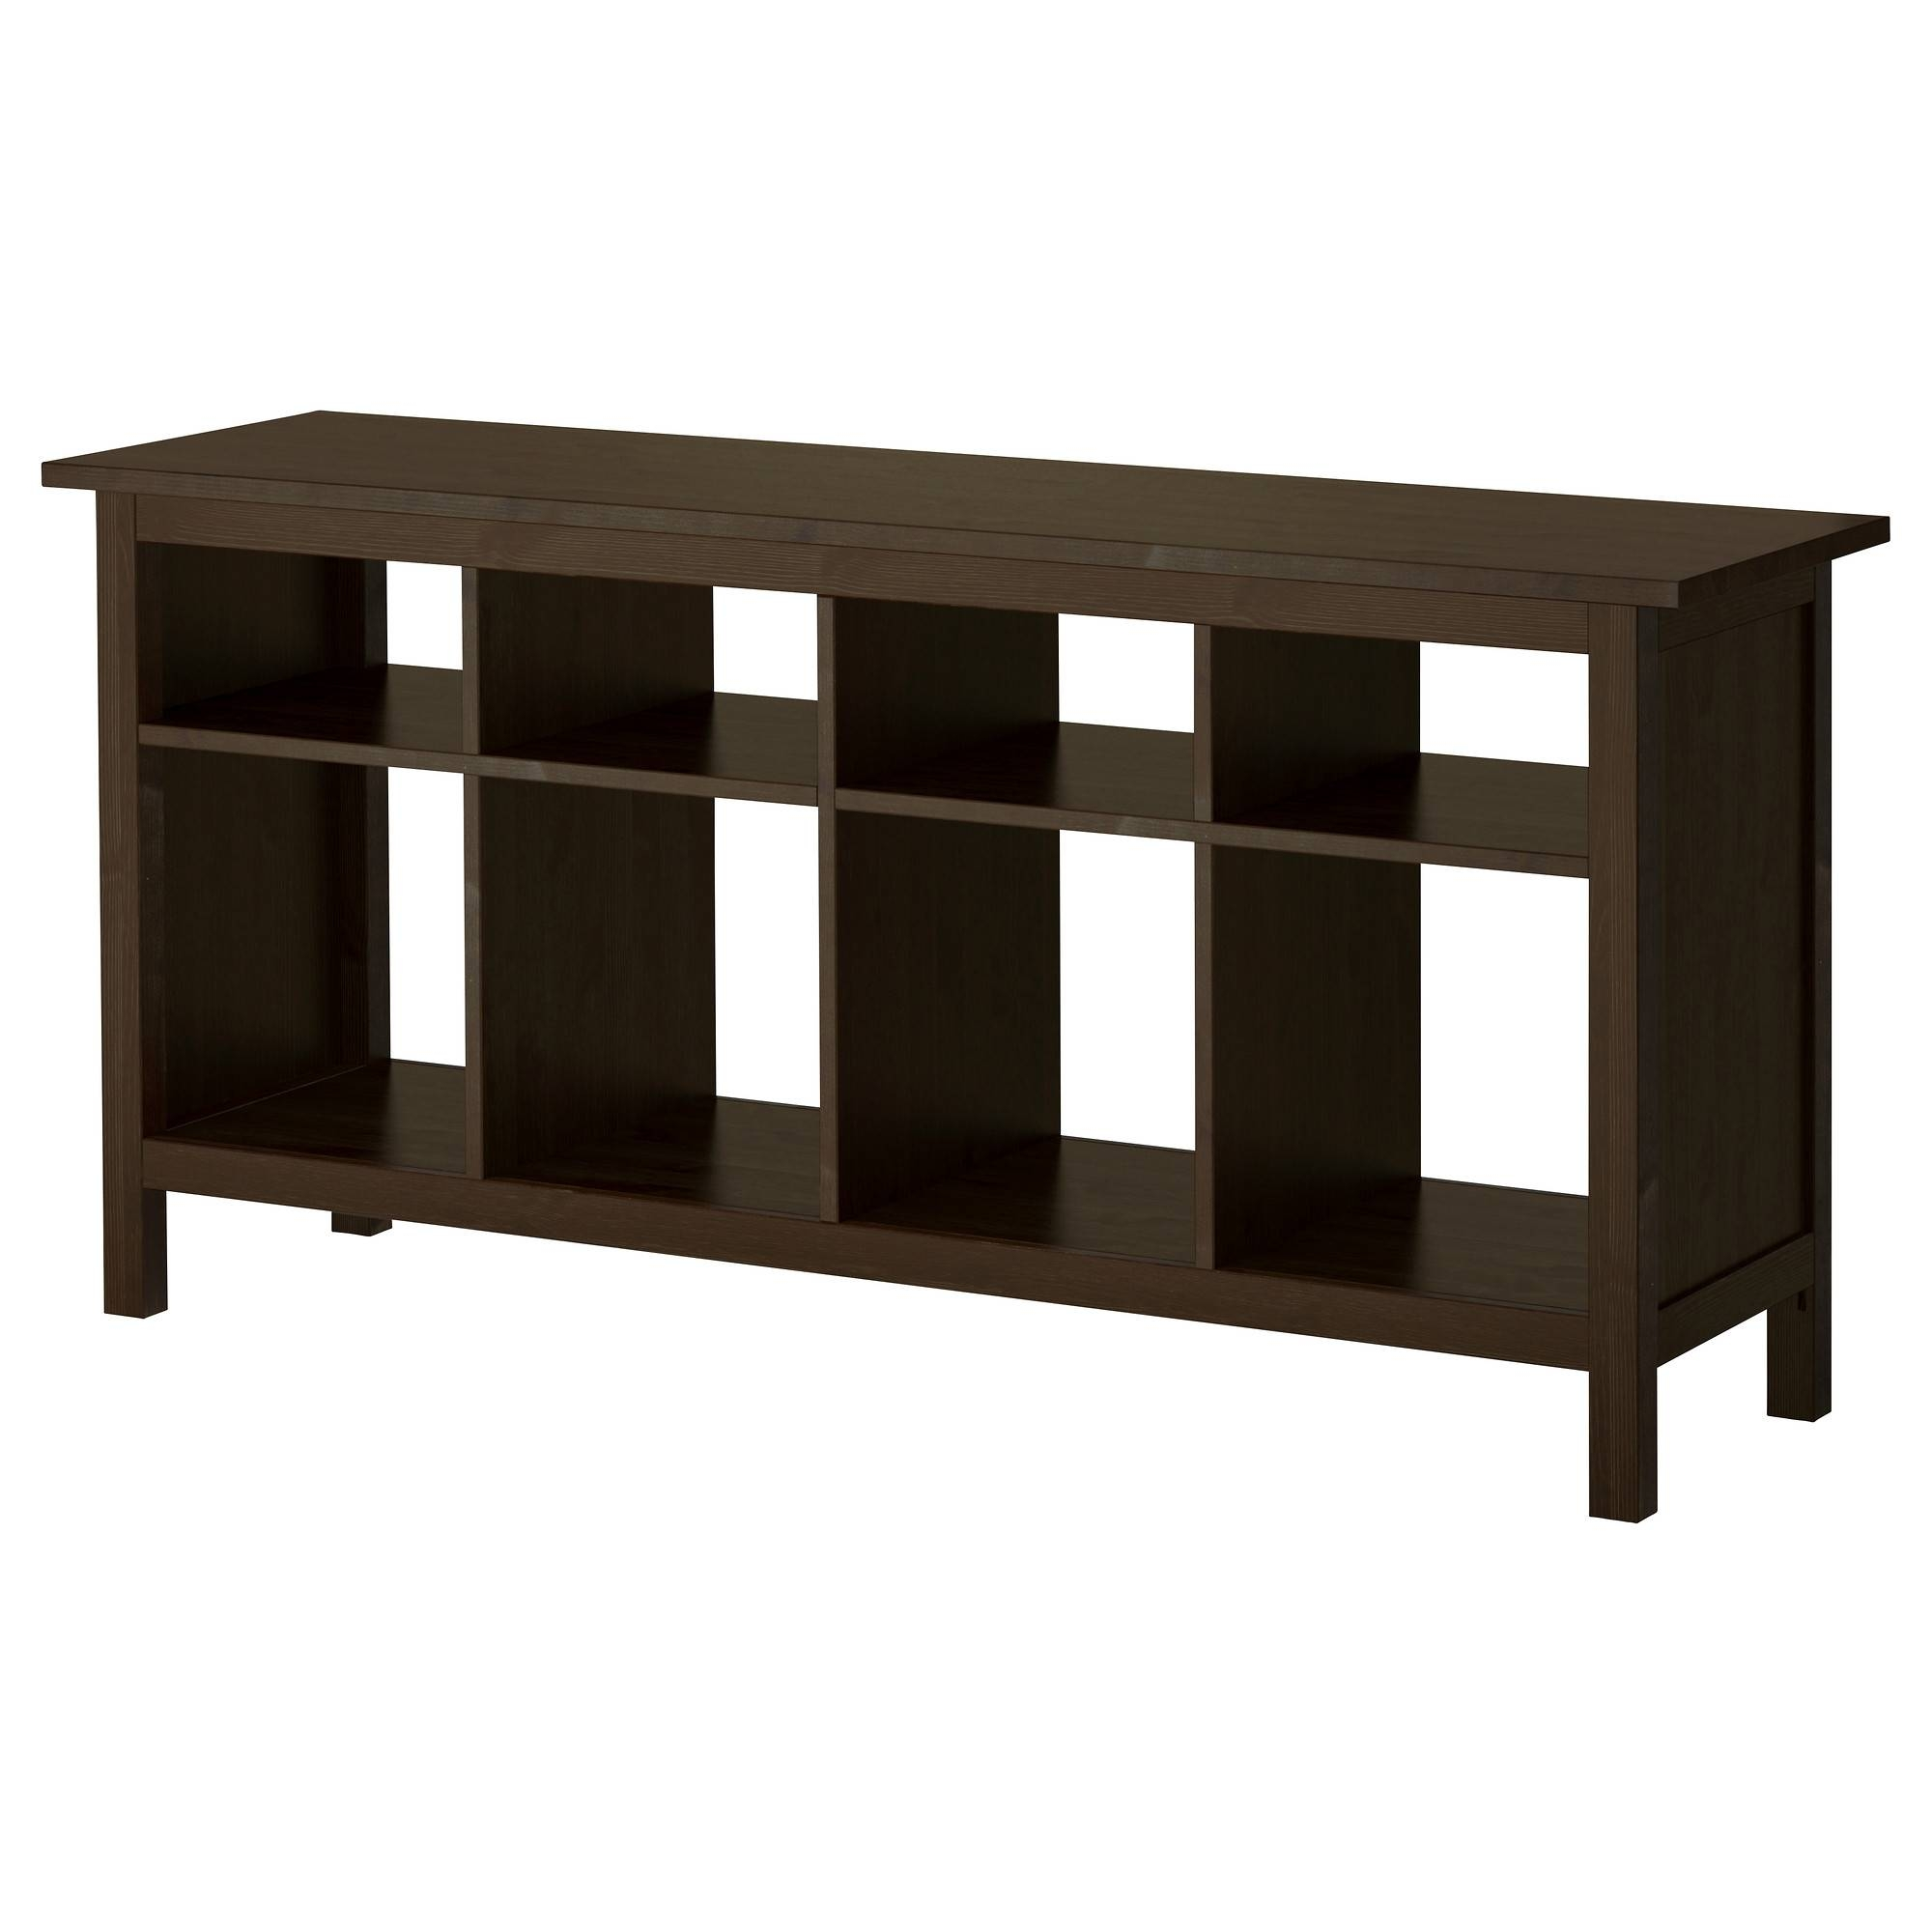 Console Tables, Sofa Tables & Sideboards – Ikea Within Most Current 36 Inch Sideboards (#10 of 15)